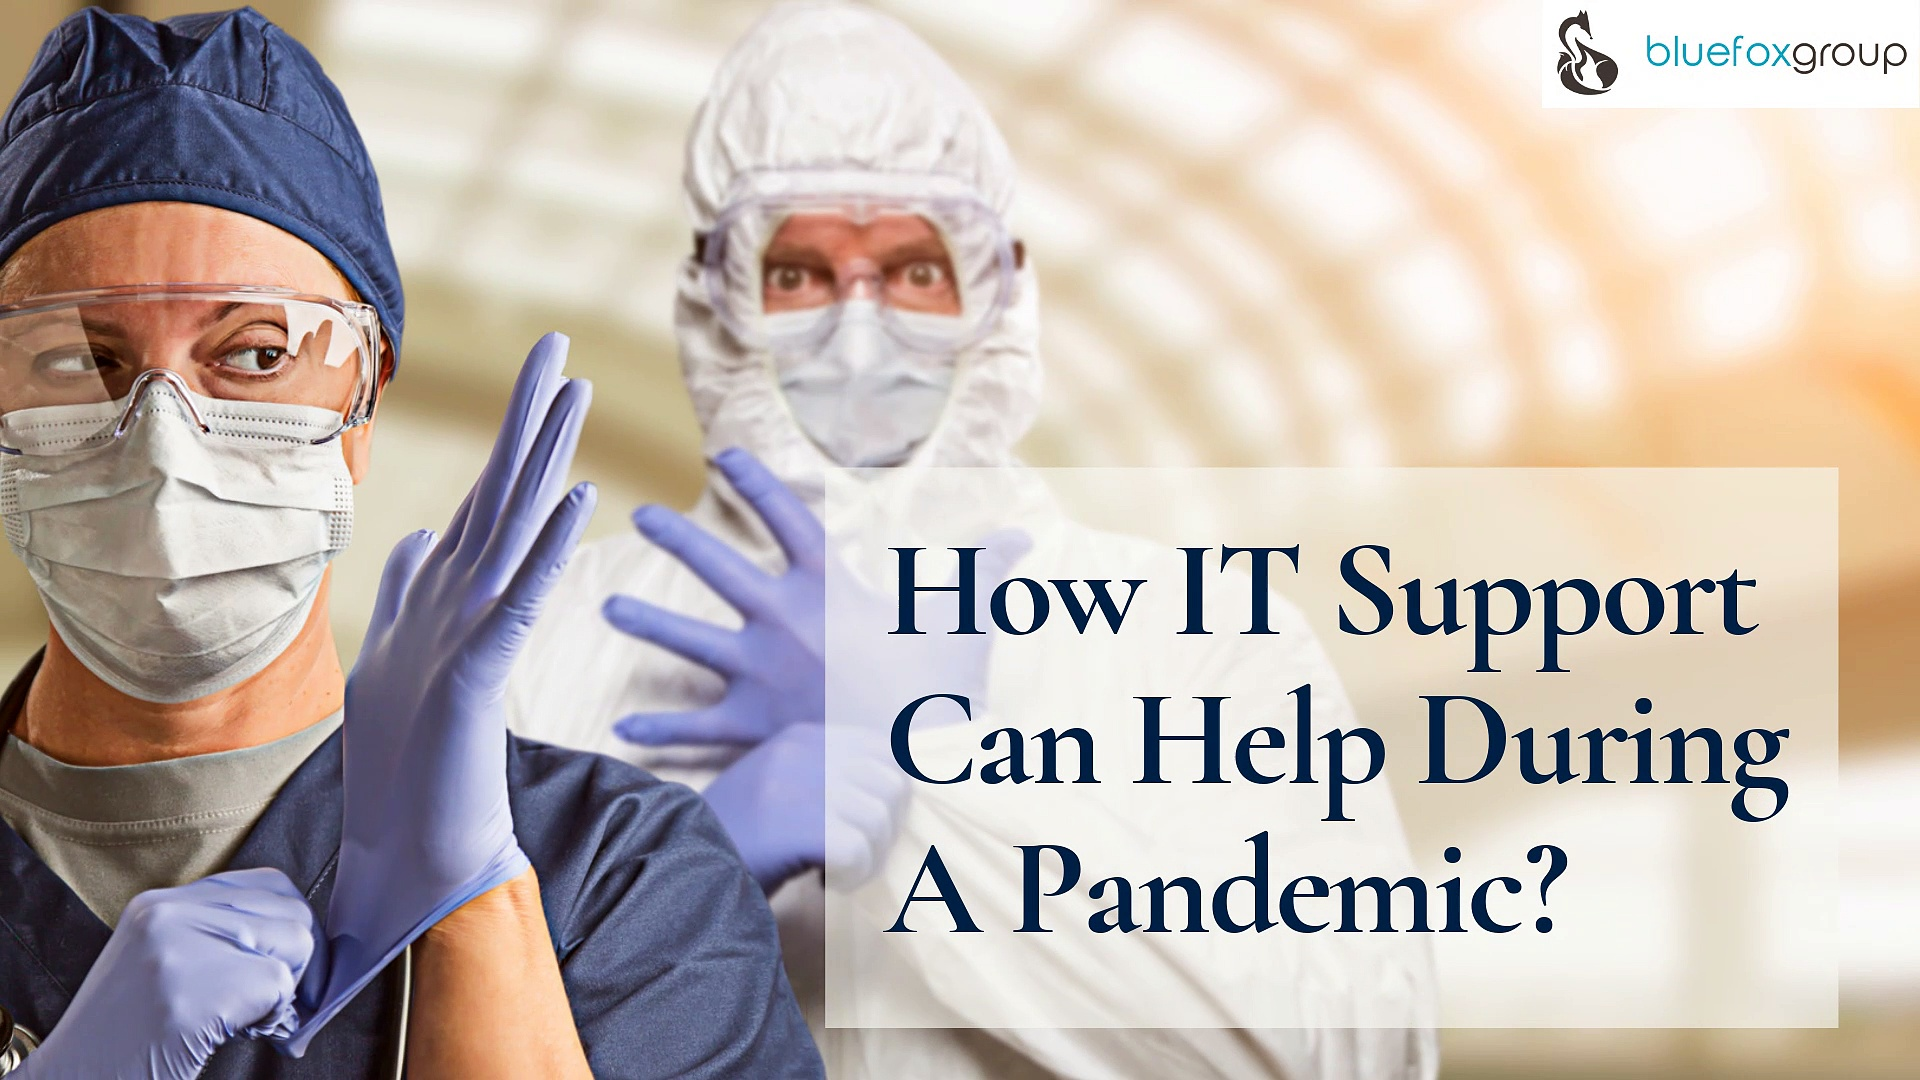 How IT Support Can Help During A Pandemic